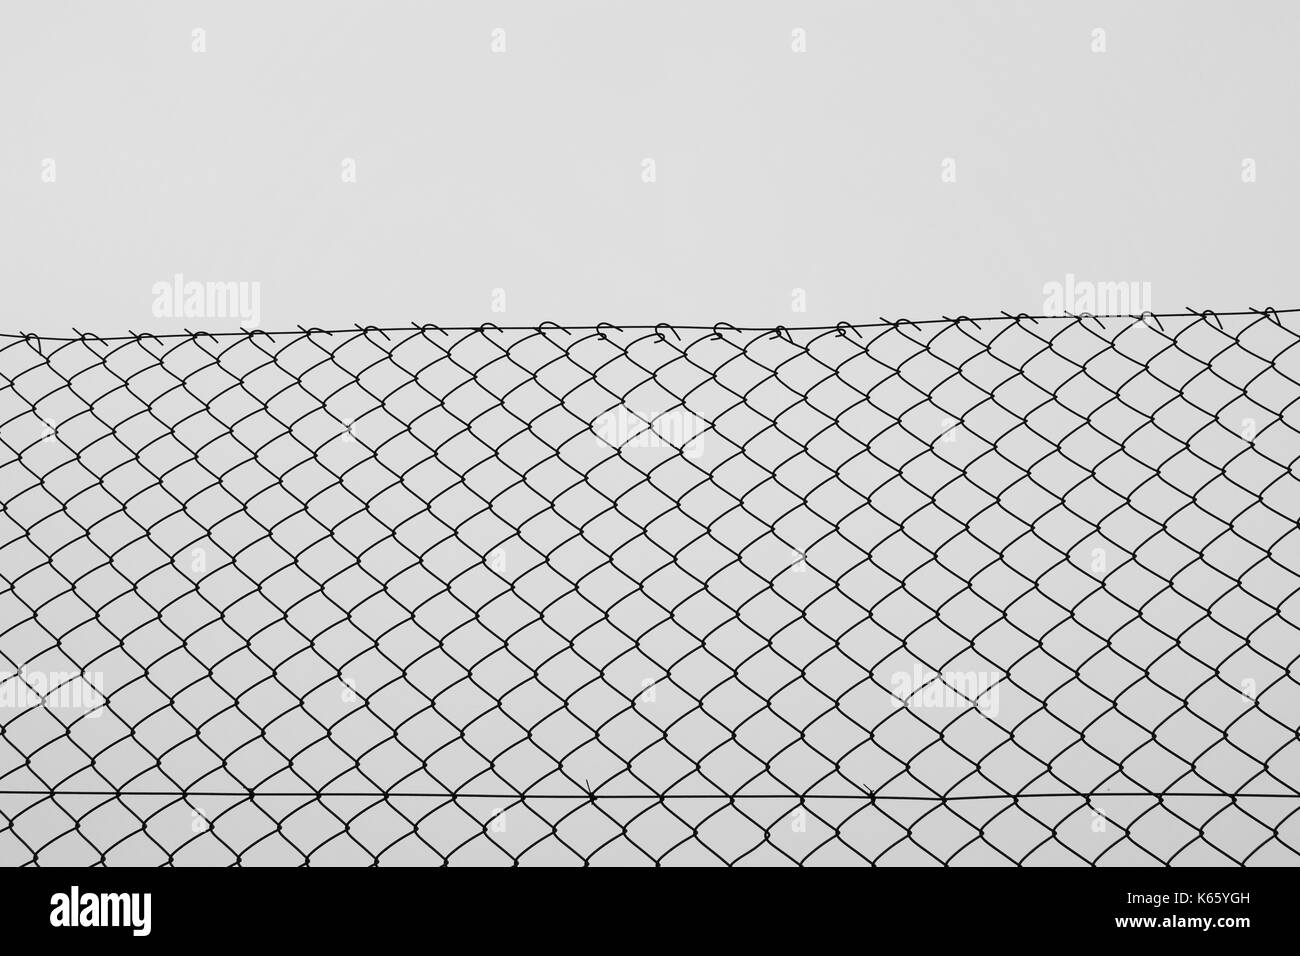 Diamond Mesh Stock Photos & Diamond Mesh Stock Images - Alamy